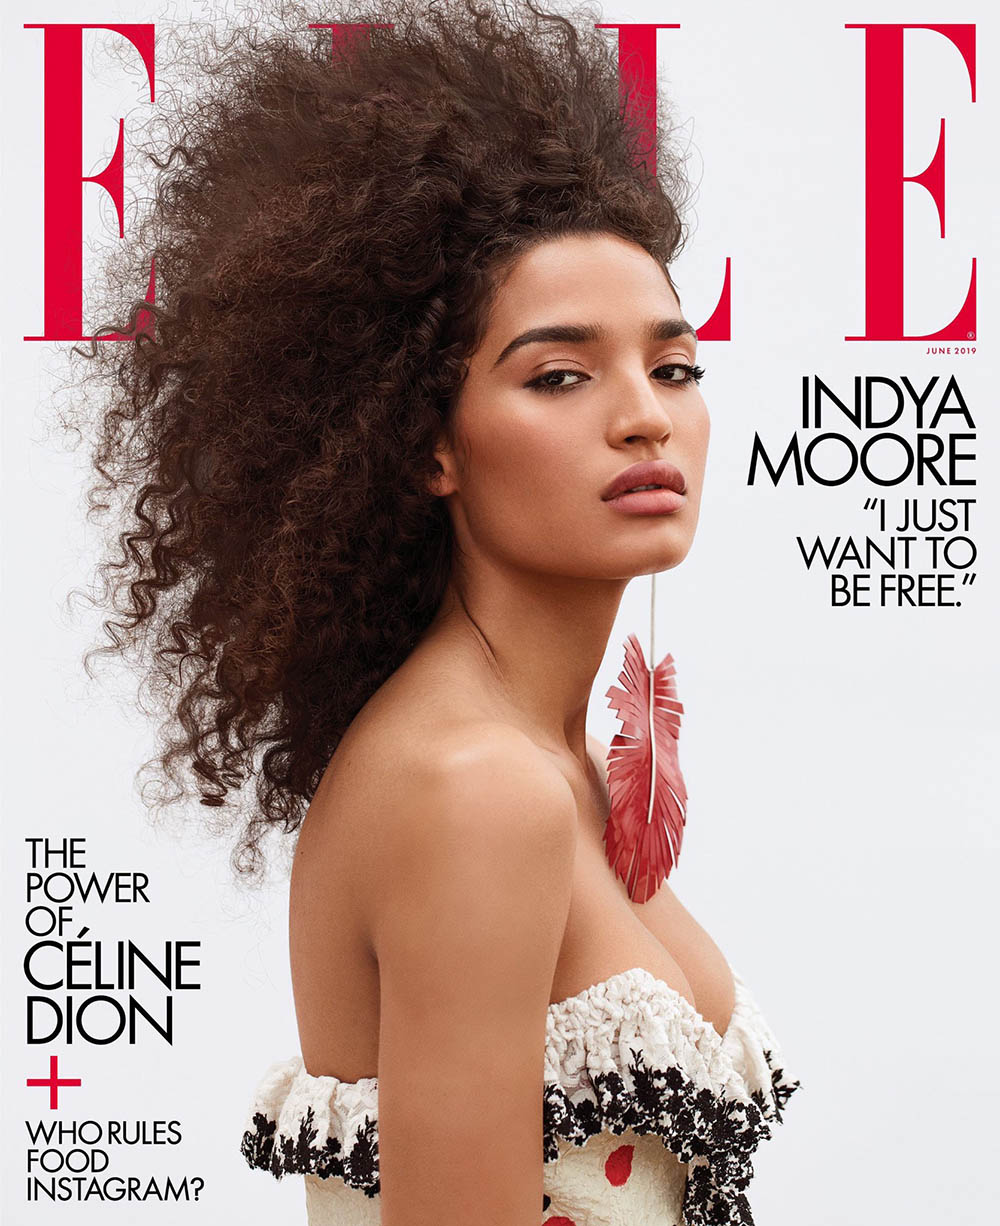 Indya Moore covers Elle US June 2019 by Zoey Grossman